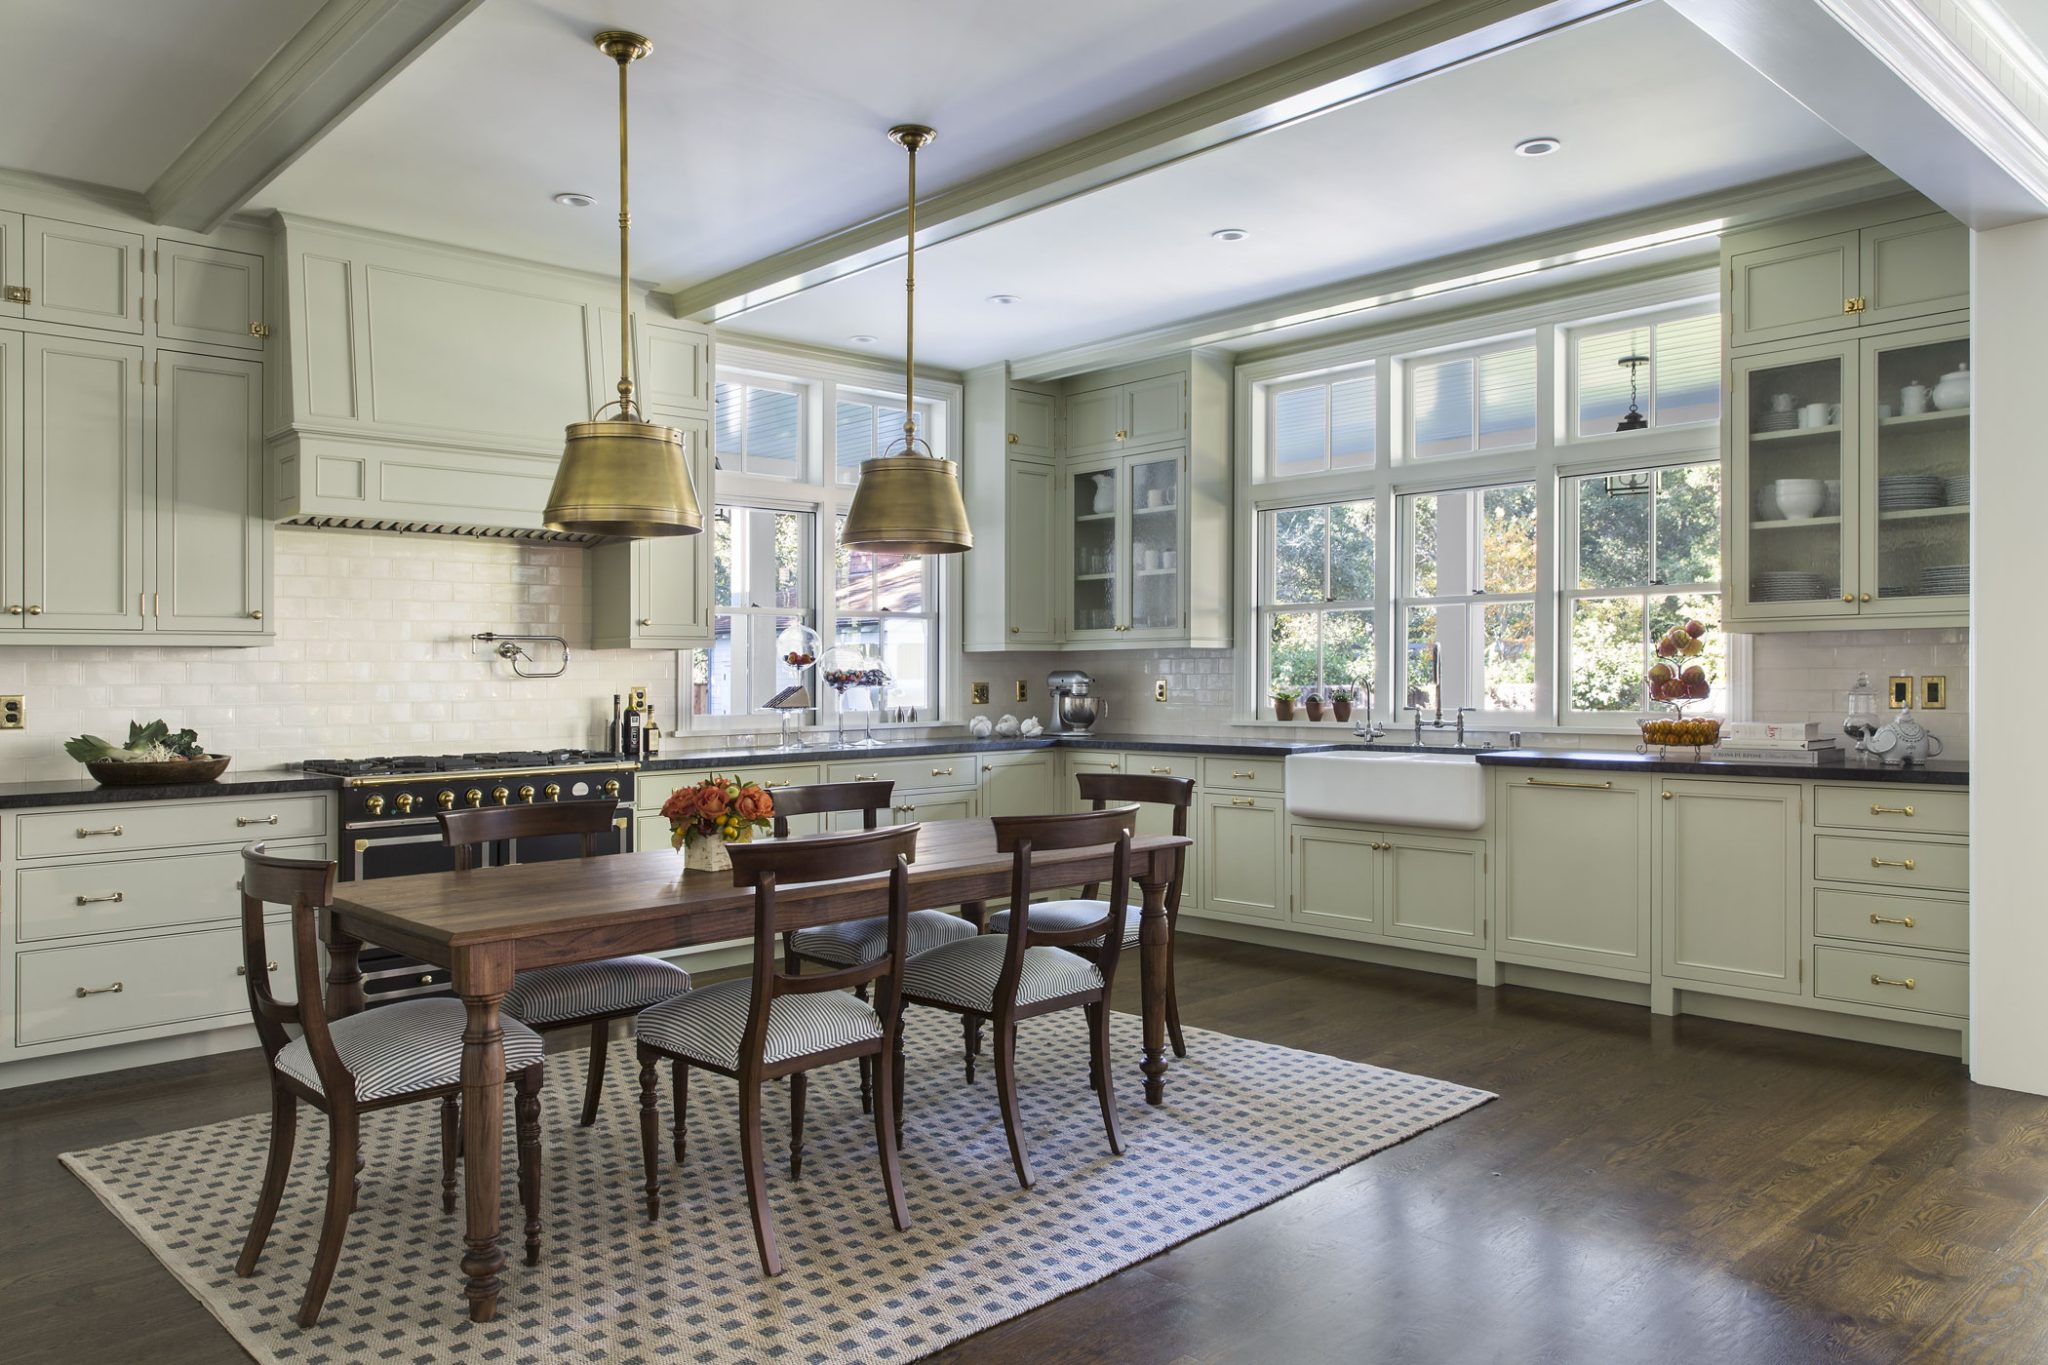 New Tennessee-Style Farmhouse Kitchen by Tim Barber Ltd.